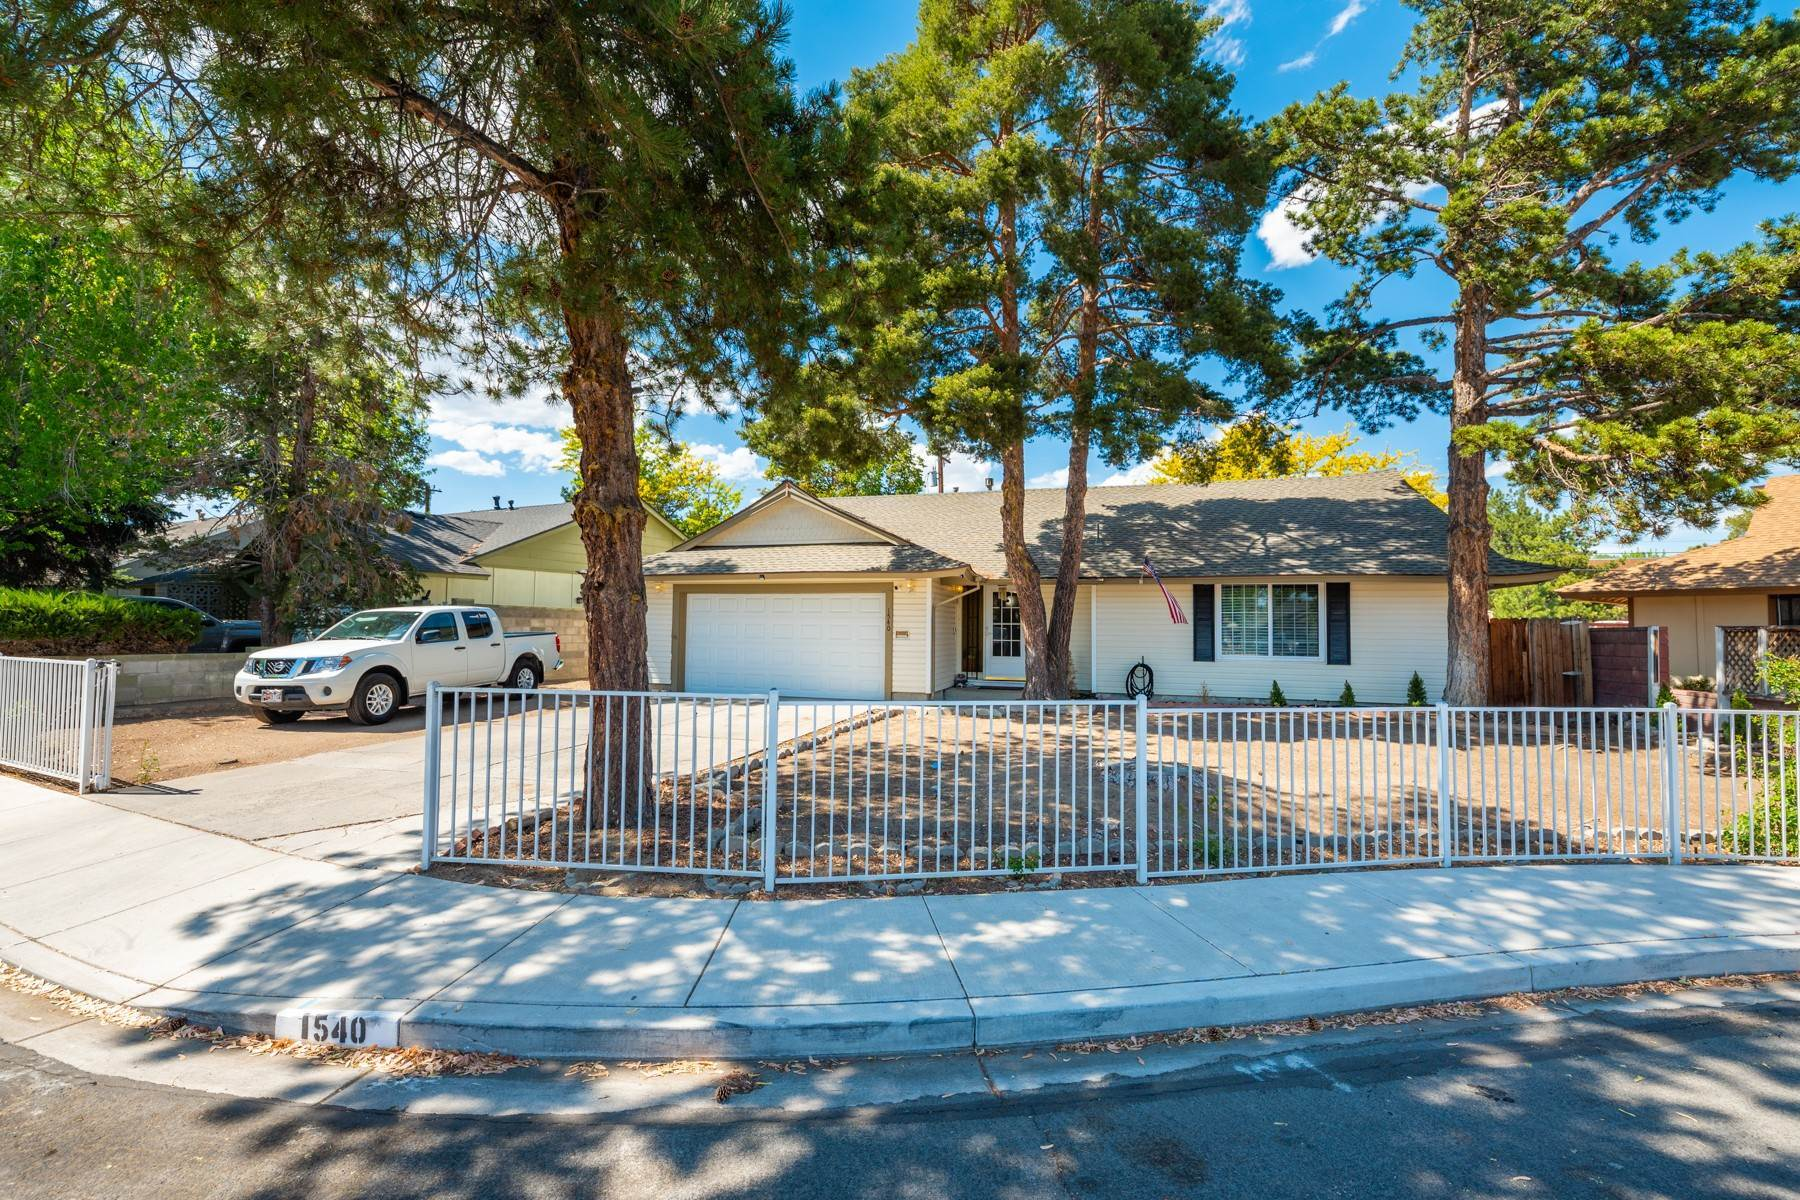 Single Family Homes for Active at Ranch-styled charmer in Sparks 1540 Plymouth Way Sparks, Nevada 89431 United States